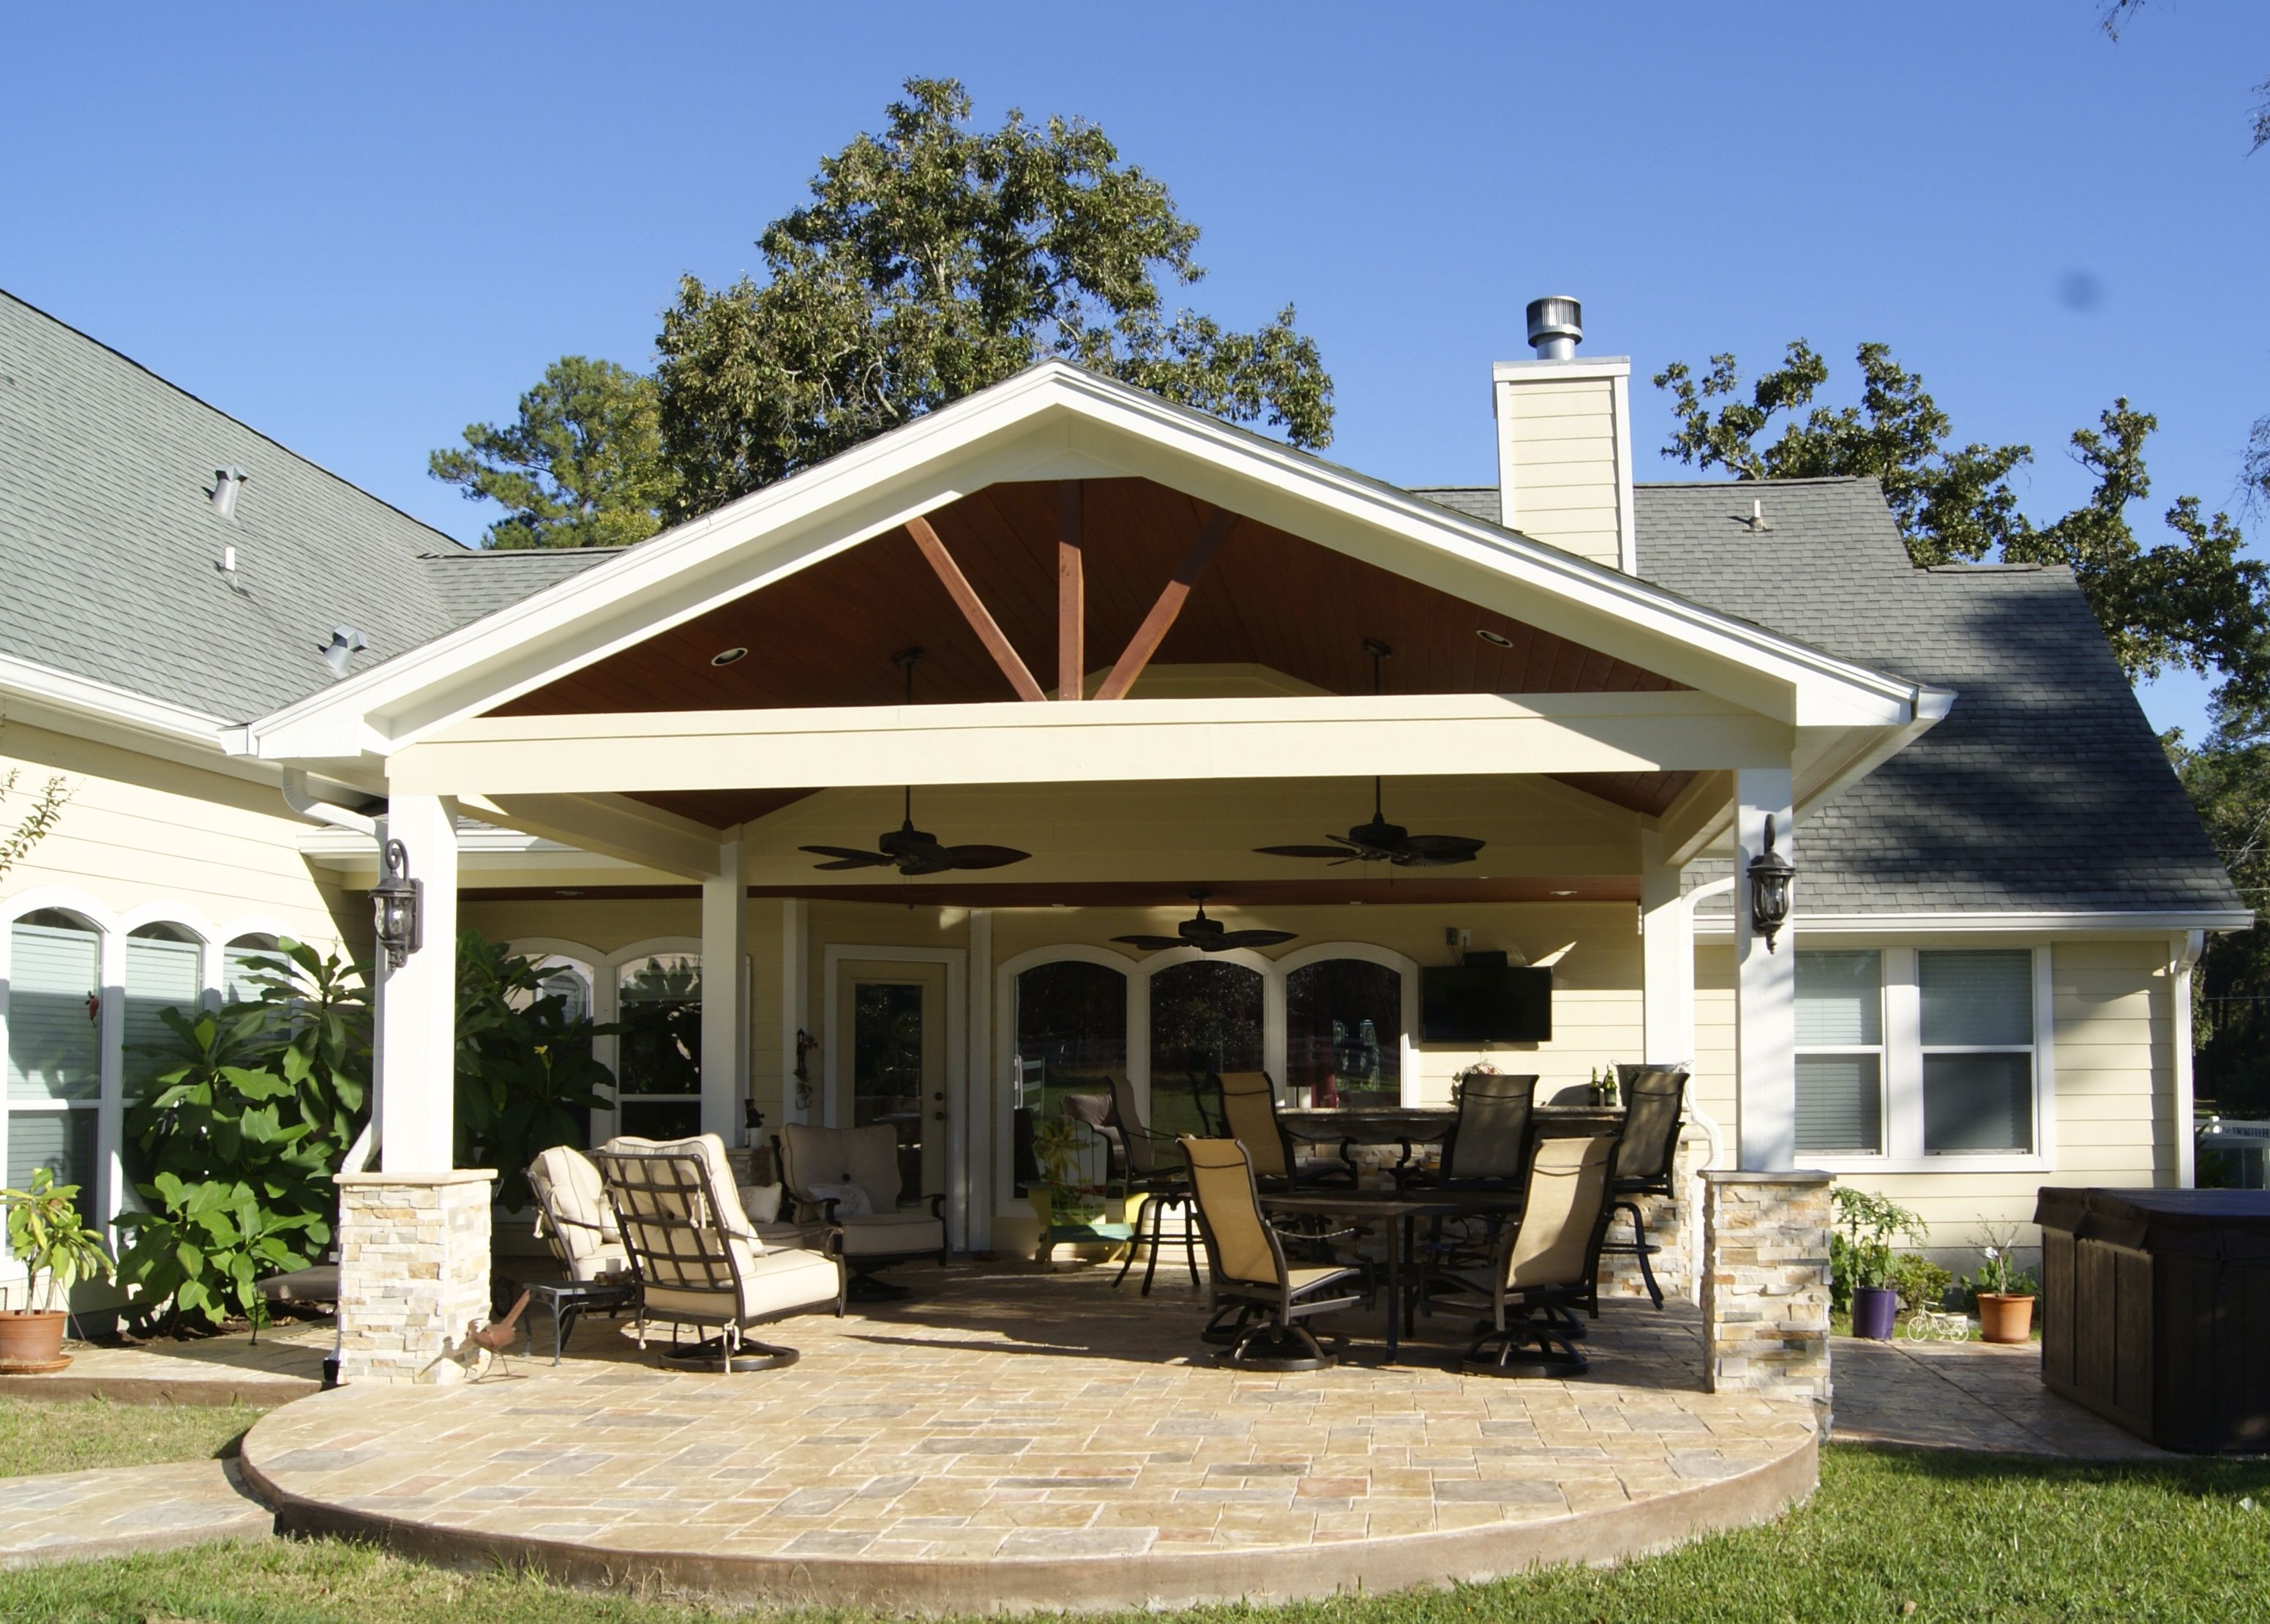 Etonnant Patio Cover With Stamped Concrete   Magnolia, TX. Back Patio Remodel Idea.  Roof